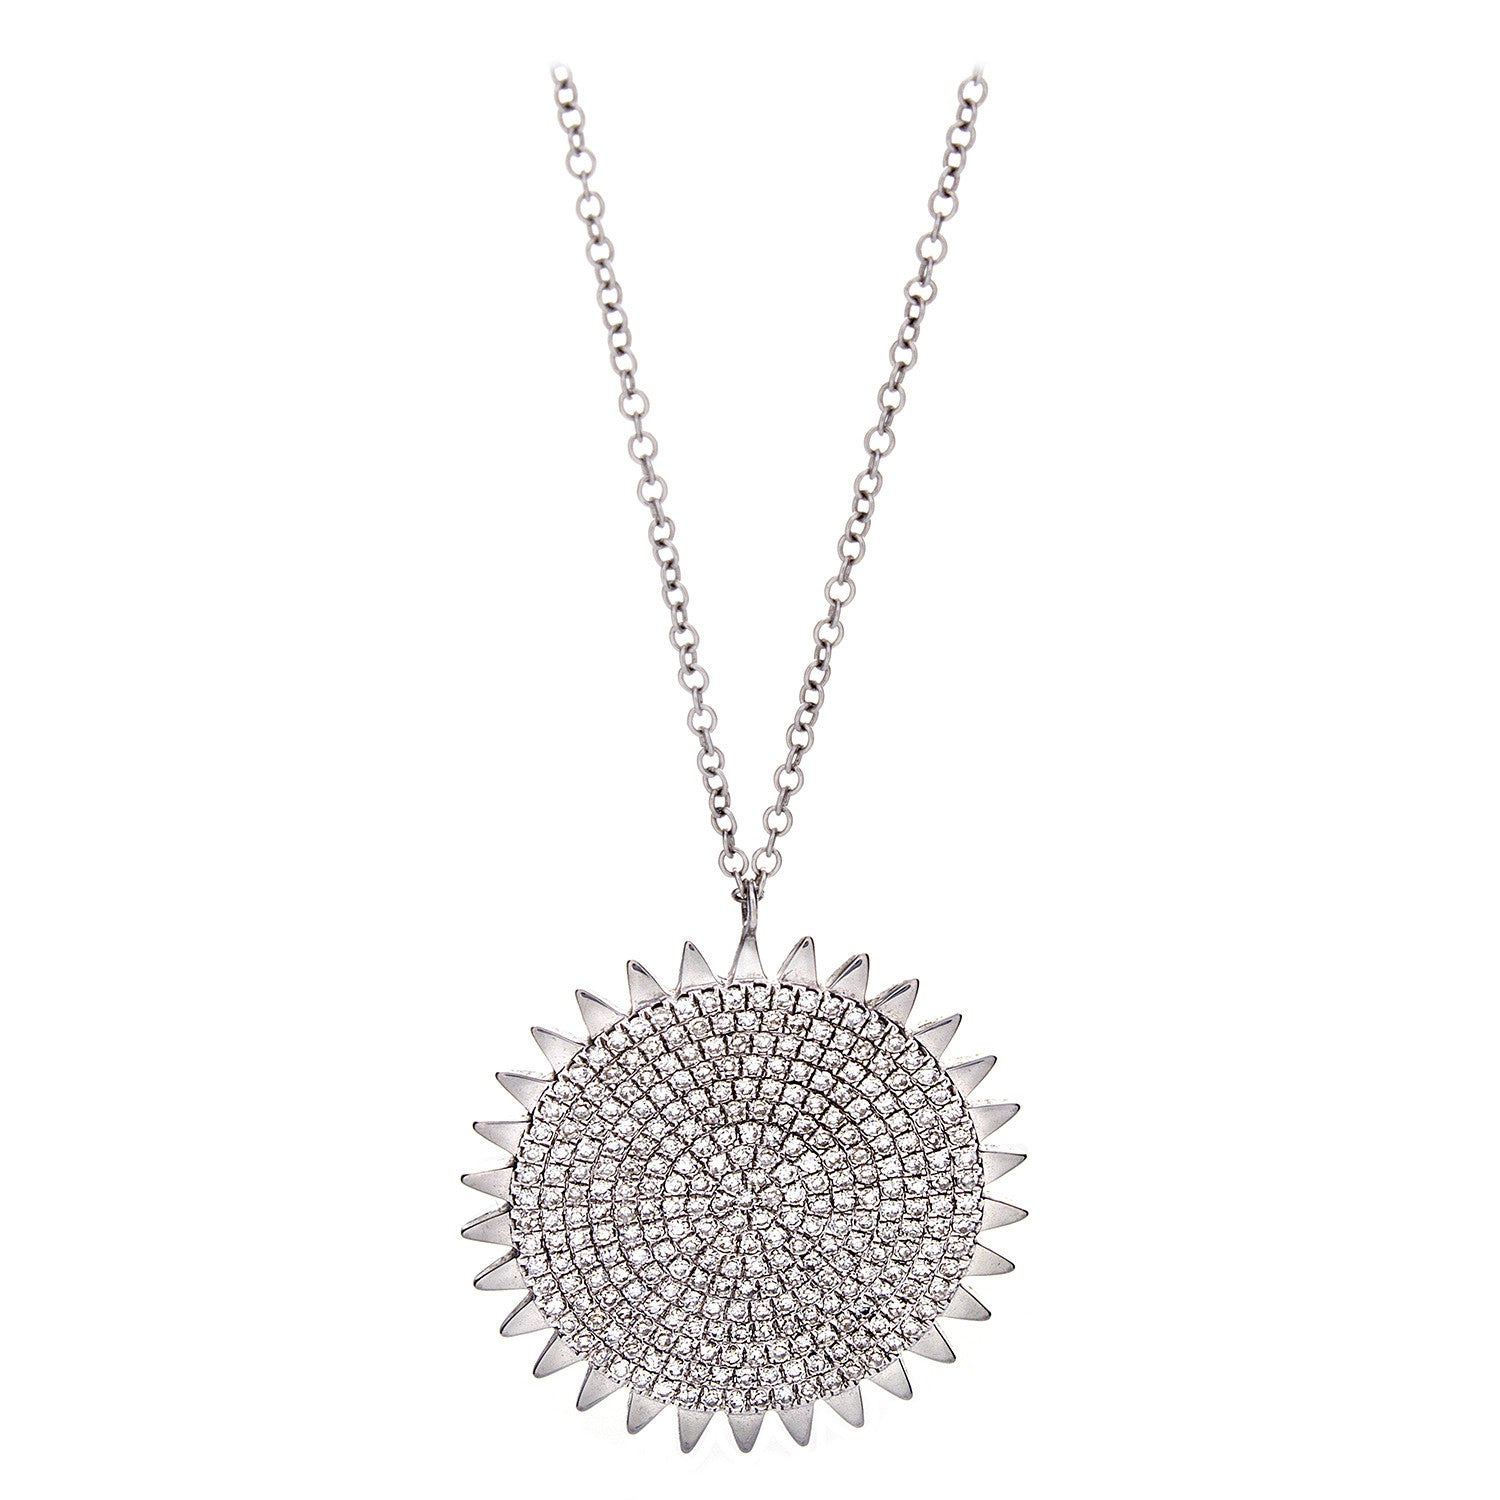 Diamond & 14K White Gold Sun Medallion Pendant Necklace - SOLD/CAN BE SPECIAL ORDERED WITH 4-6 WEEKS DELIVERY TIME FRAME